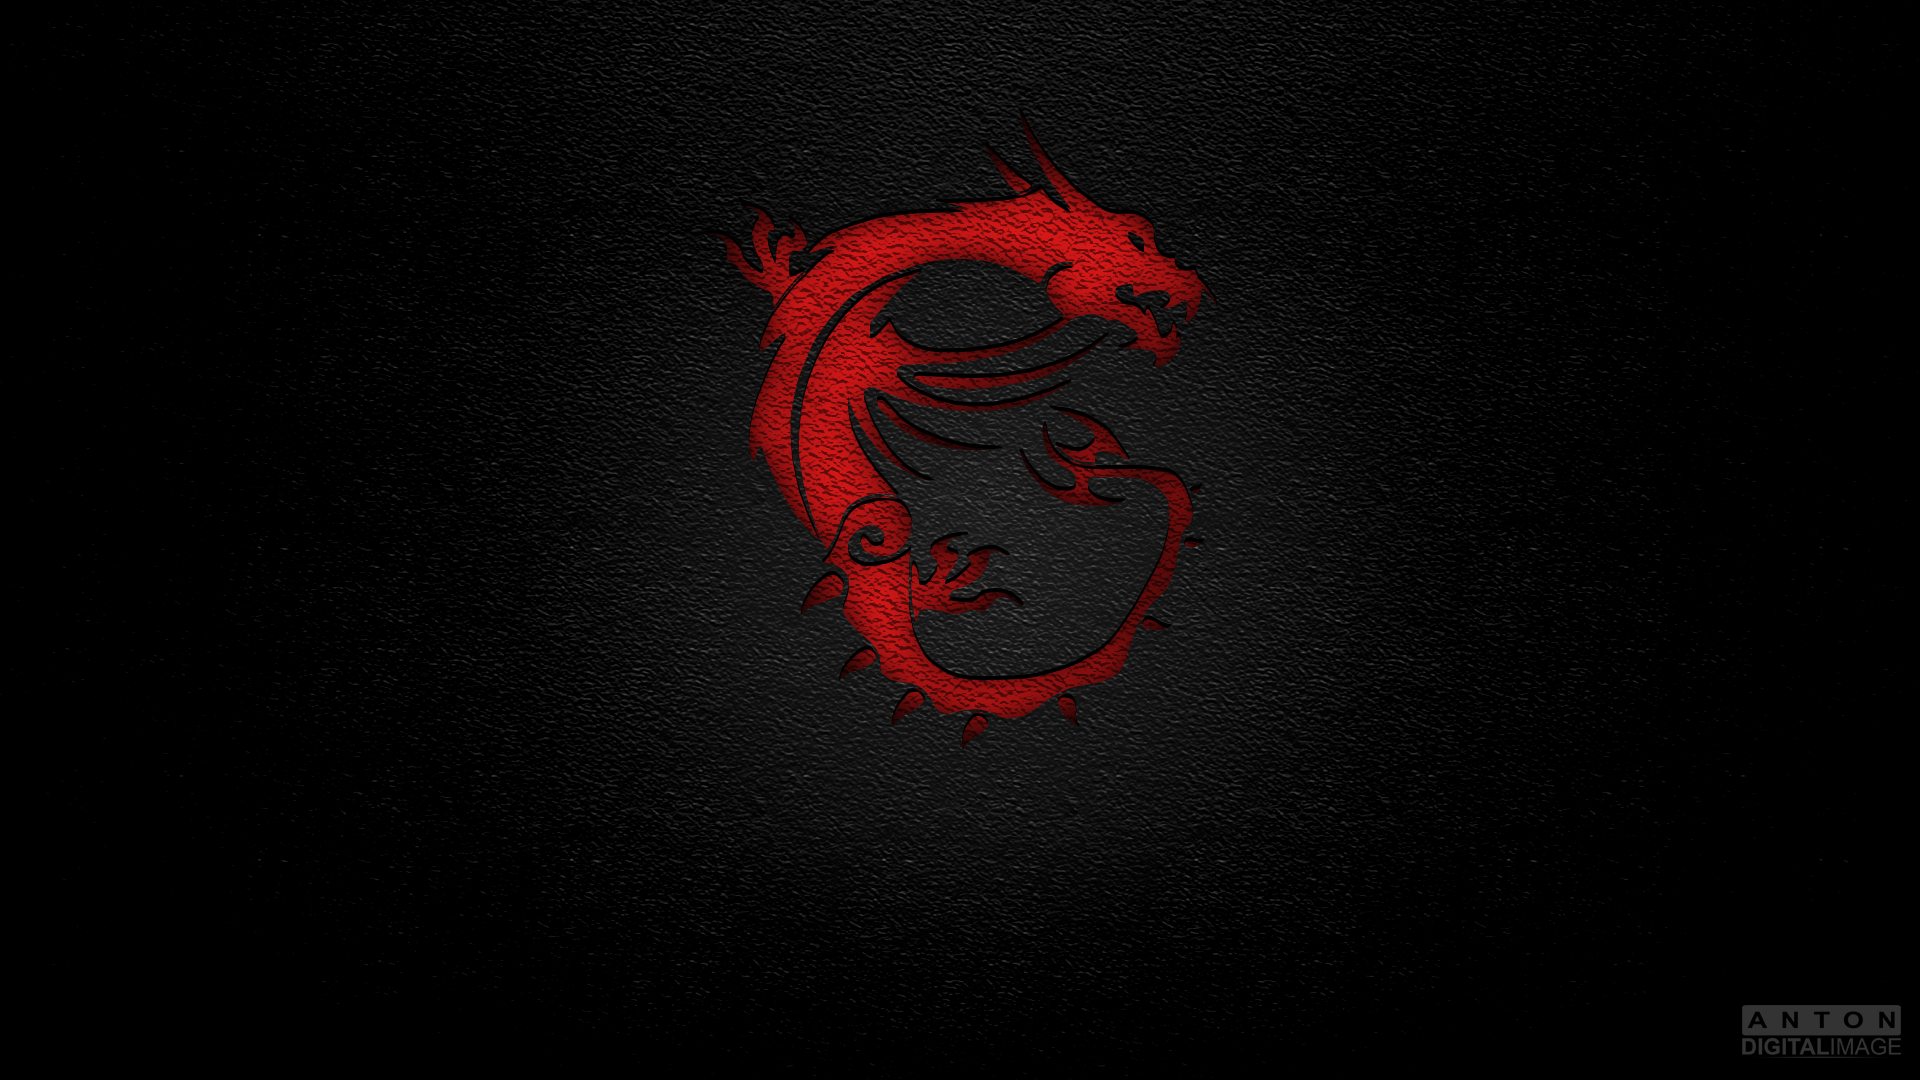 47 msi gaming dragon wallpaper on wallpapersafari - Red gaming wallpaper ...